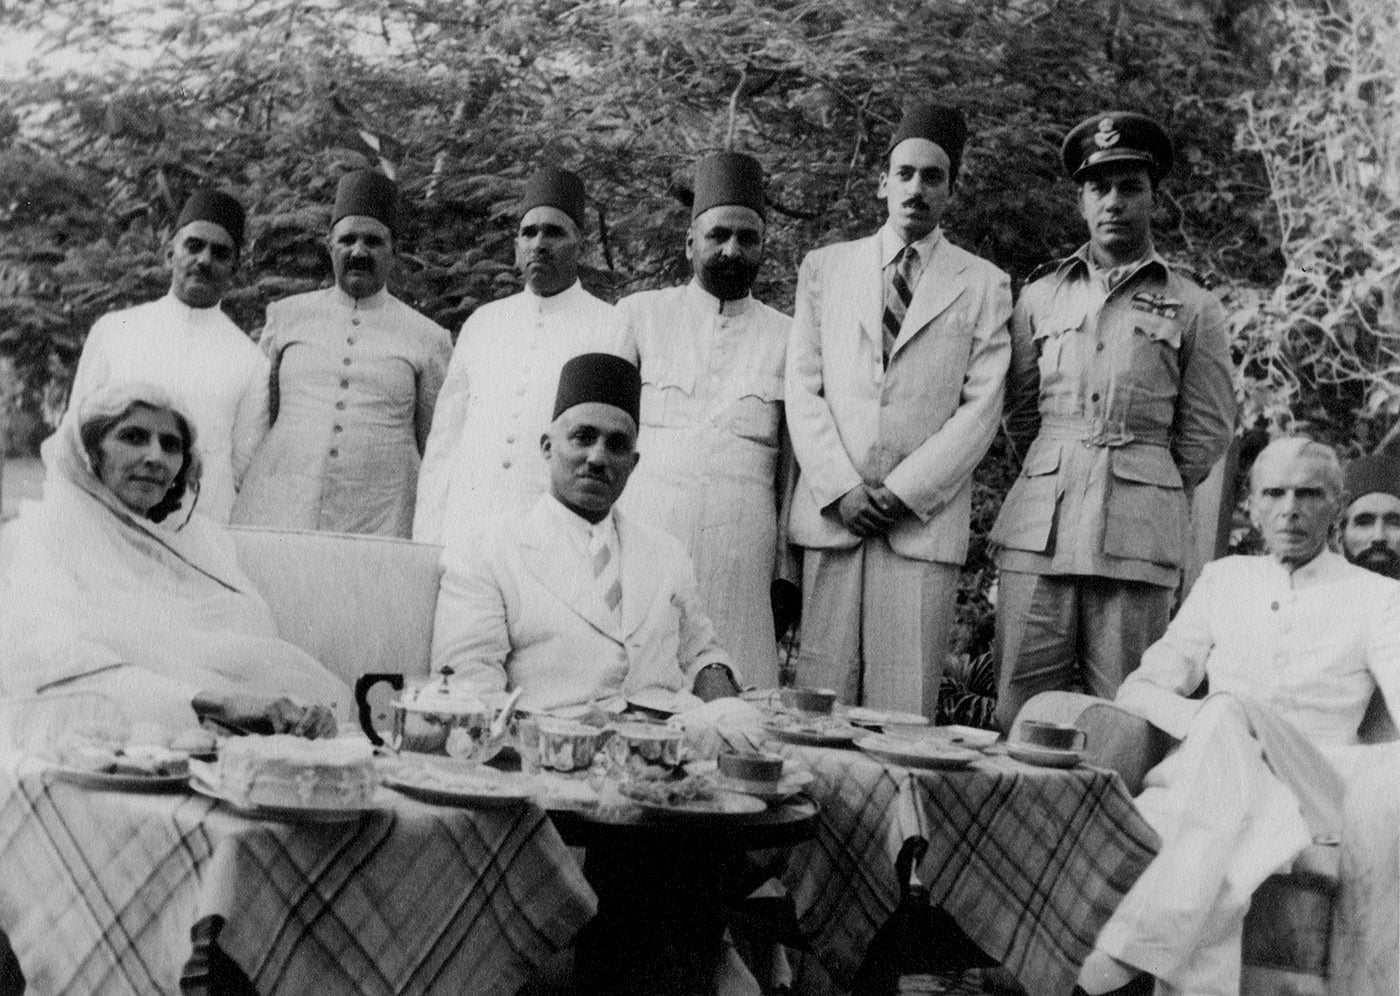 Quaid-i-Azam Mohammad Ali Jinnah and Miss Fatima Jinnah enjoy high tea with the Amir of Bahawalpur, Nawab Sadiq Mohammad Khan Abbasi V, possibly at his retreat in Malir, on the outskirts of Karachi. Standing in a white suit, between the Amir and Mr Jinnah, is his son, the future Nawab. On the extreme left, behind Miss Jinnah, is Colonel Hashmi, ADC to the Amir. — Courtesy Princess Yasmien Abbasi Archive London